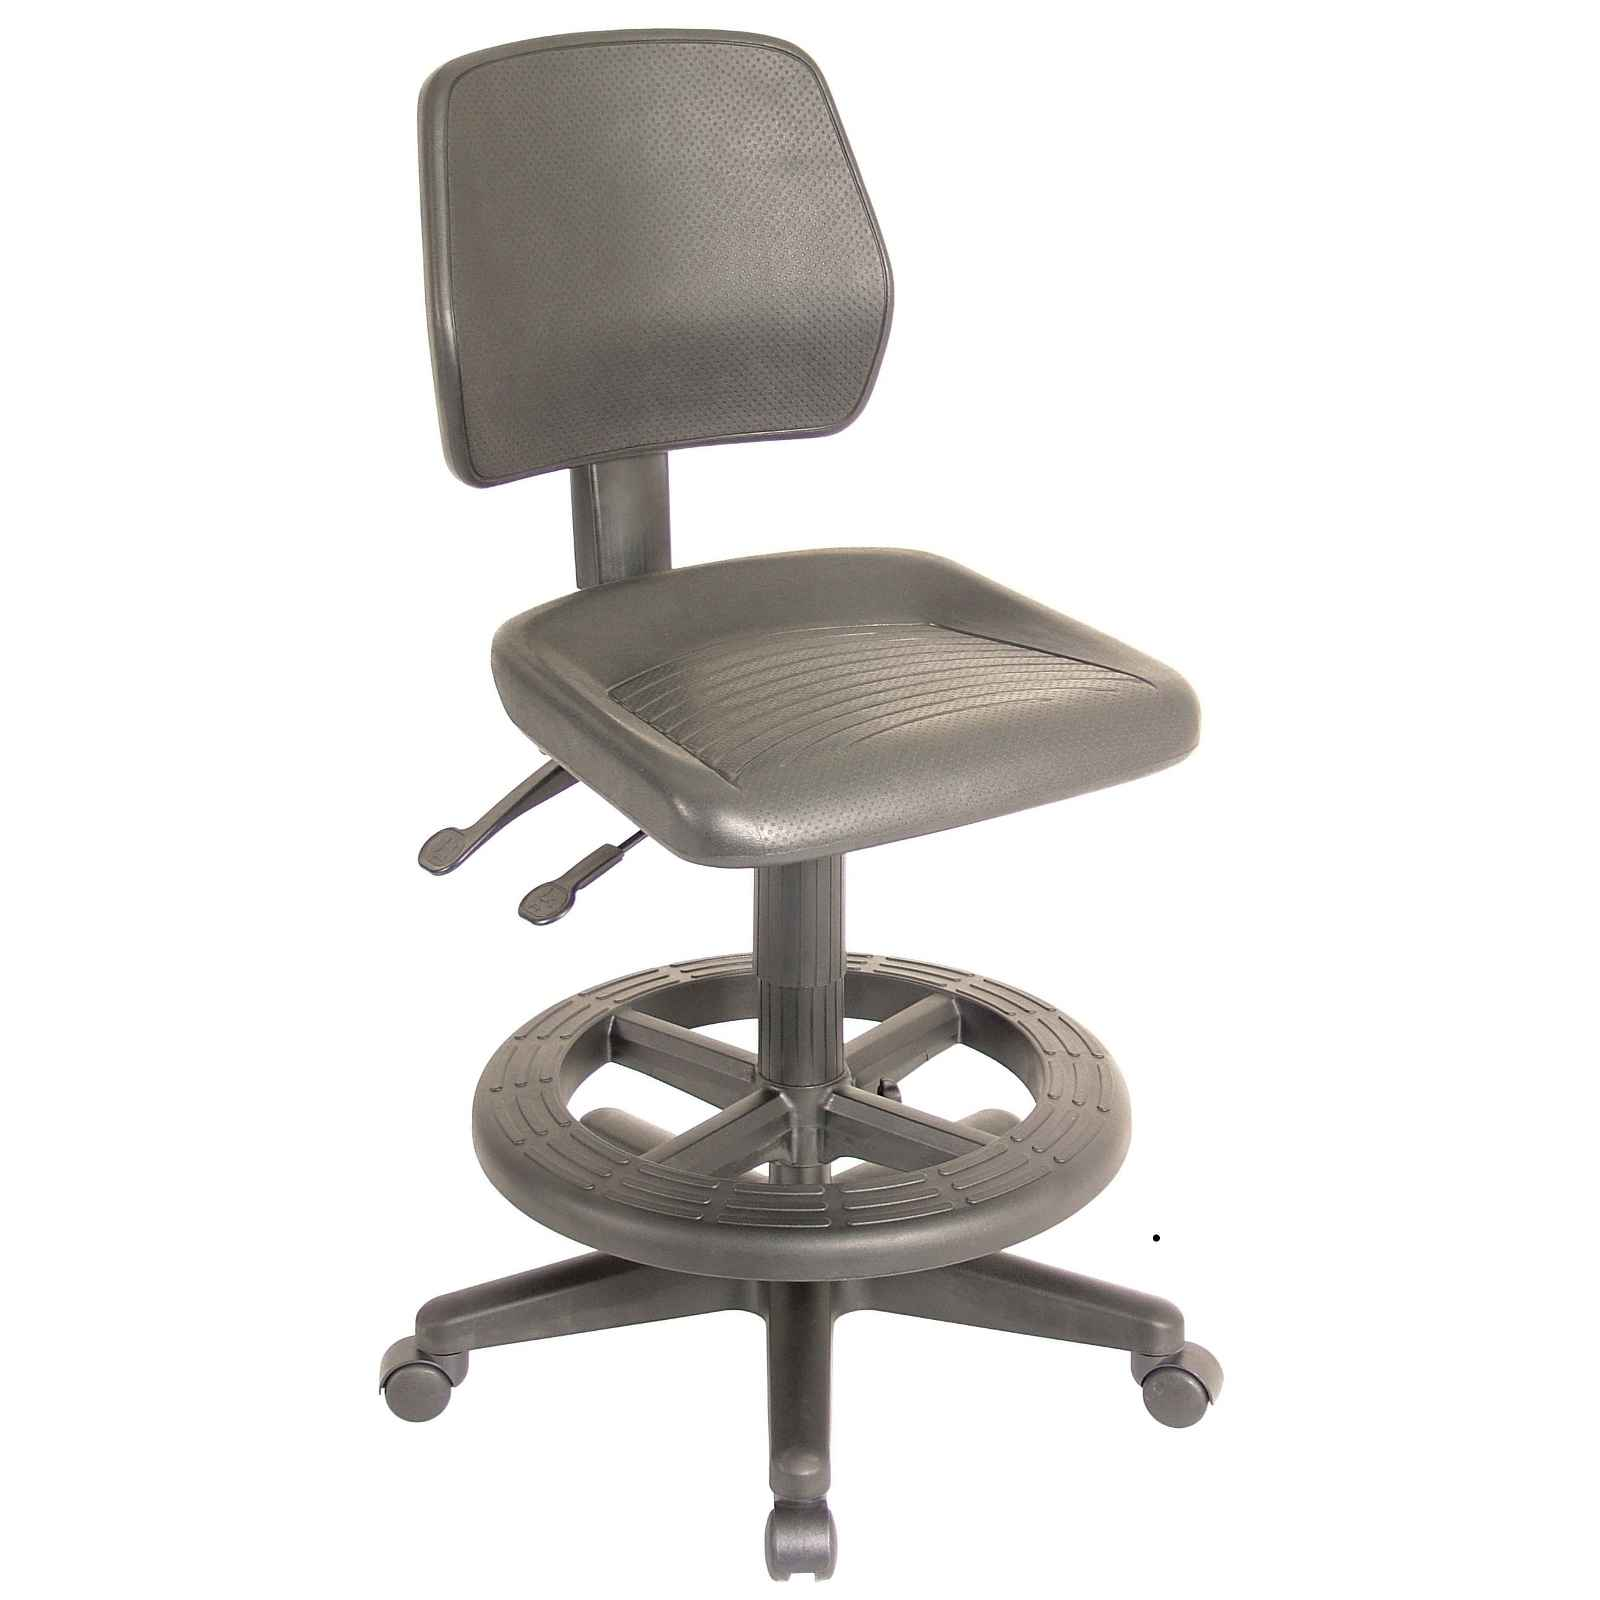 Leather Drafting Chair Stool for Extra Comfort : Industrial Brown Adjutable Height Drafting Chair from office-turn.com size 1600 x 1600 jpeg 65kB